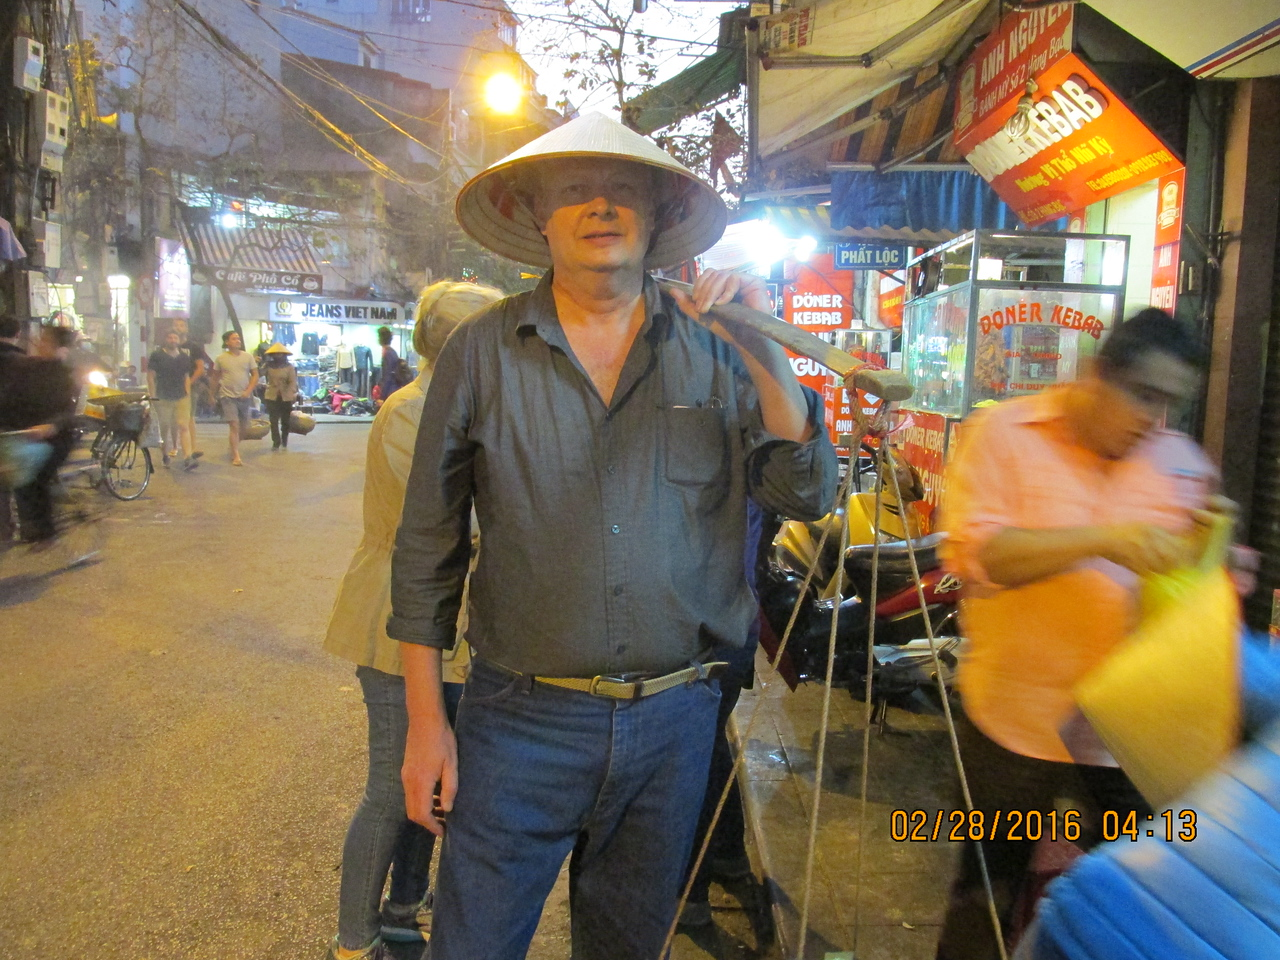 0056 - Brian on the Streets of the Old Quarter - Hanoi Vietnam - Date Correct but Time on Pic is Wrong